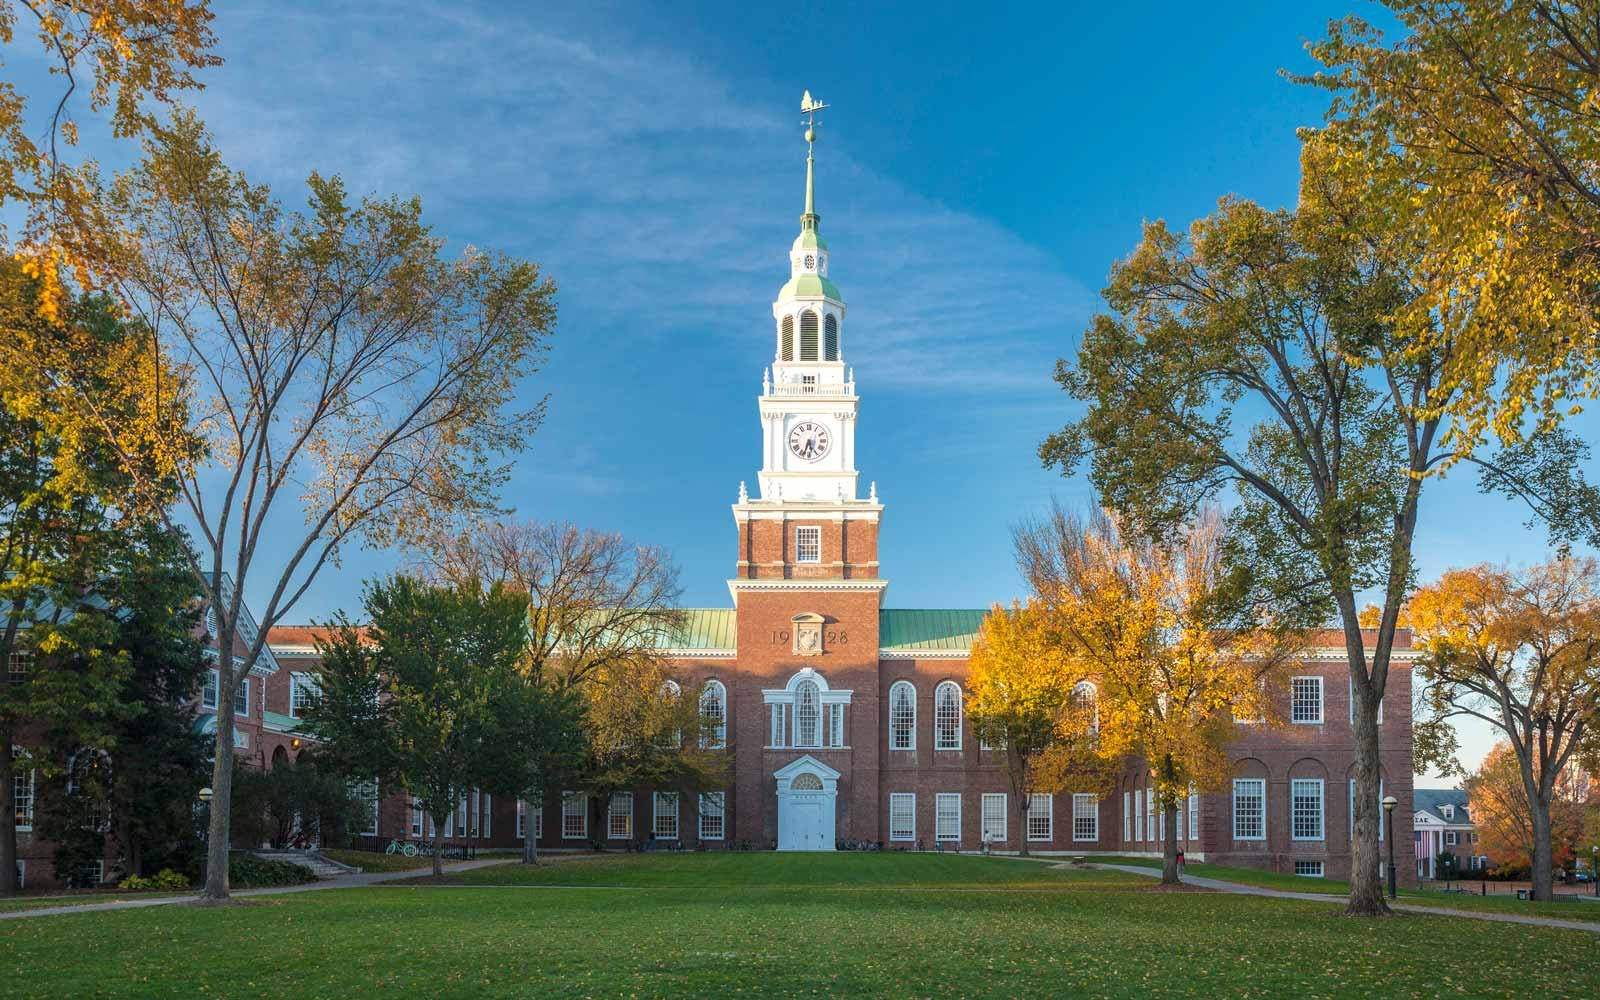 Dartmouth College in New Hampshire